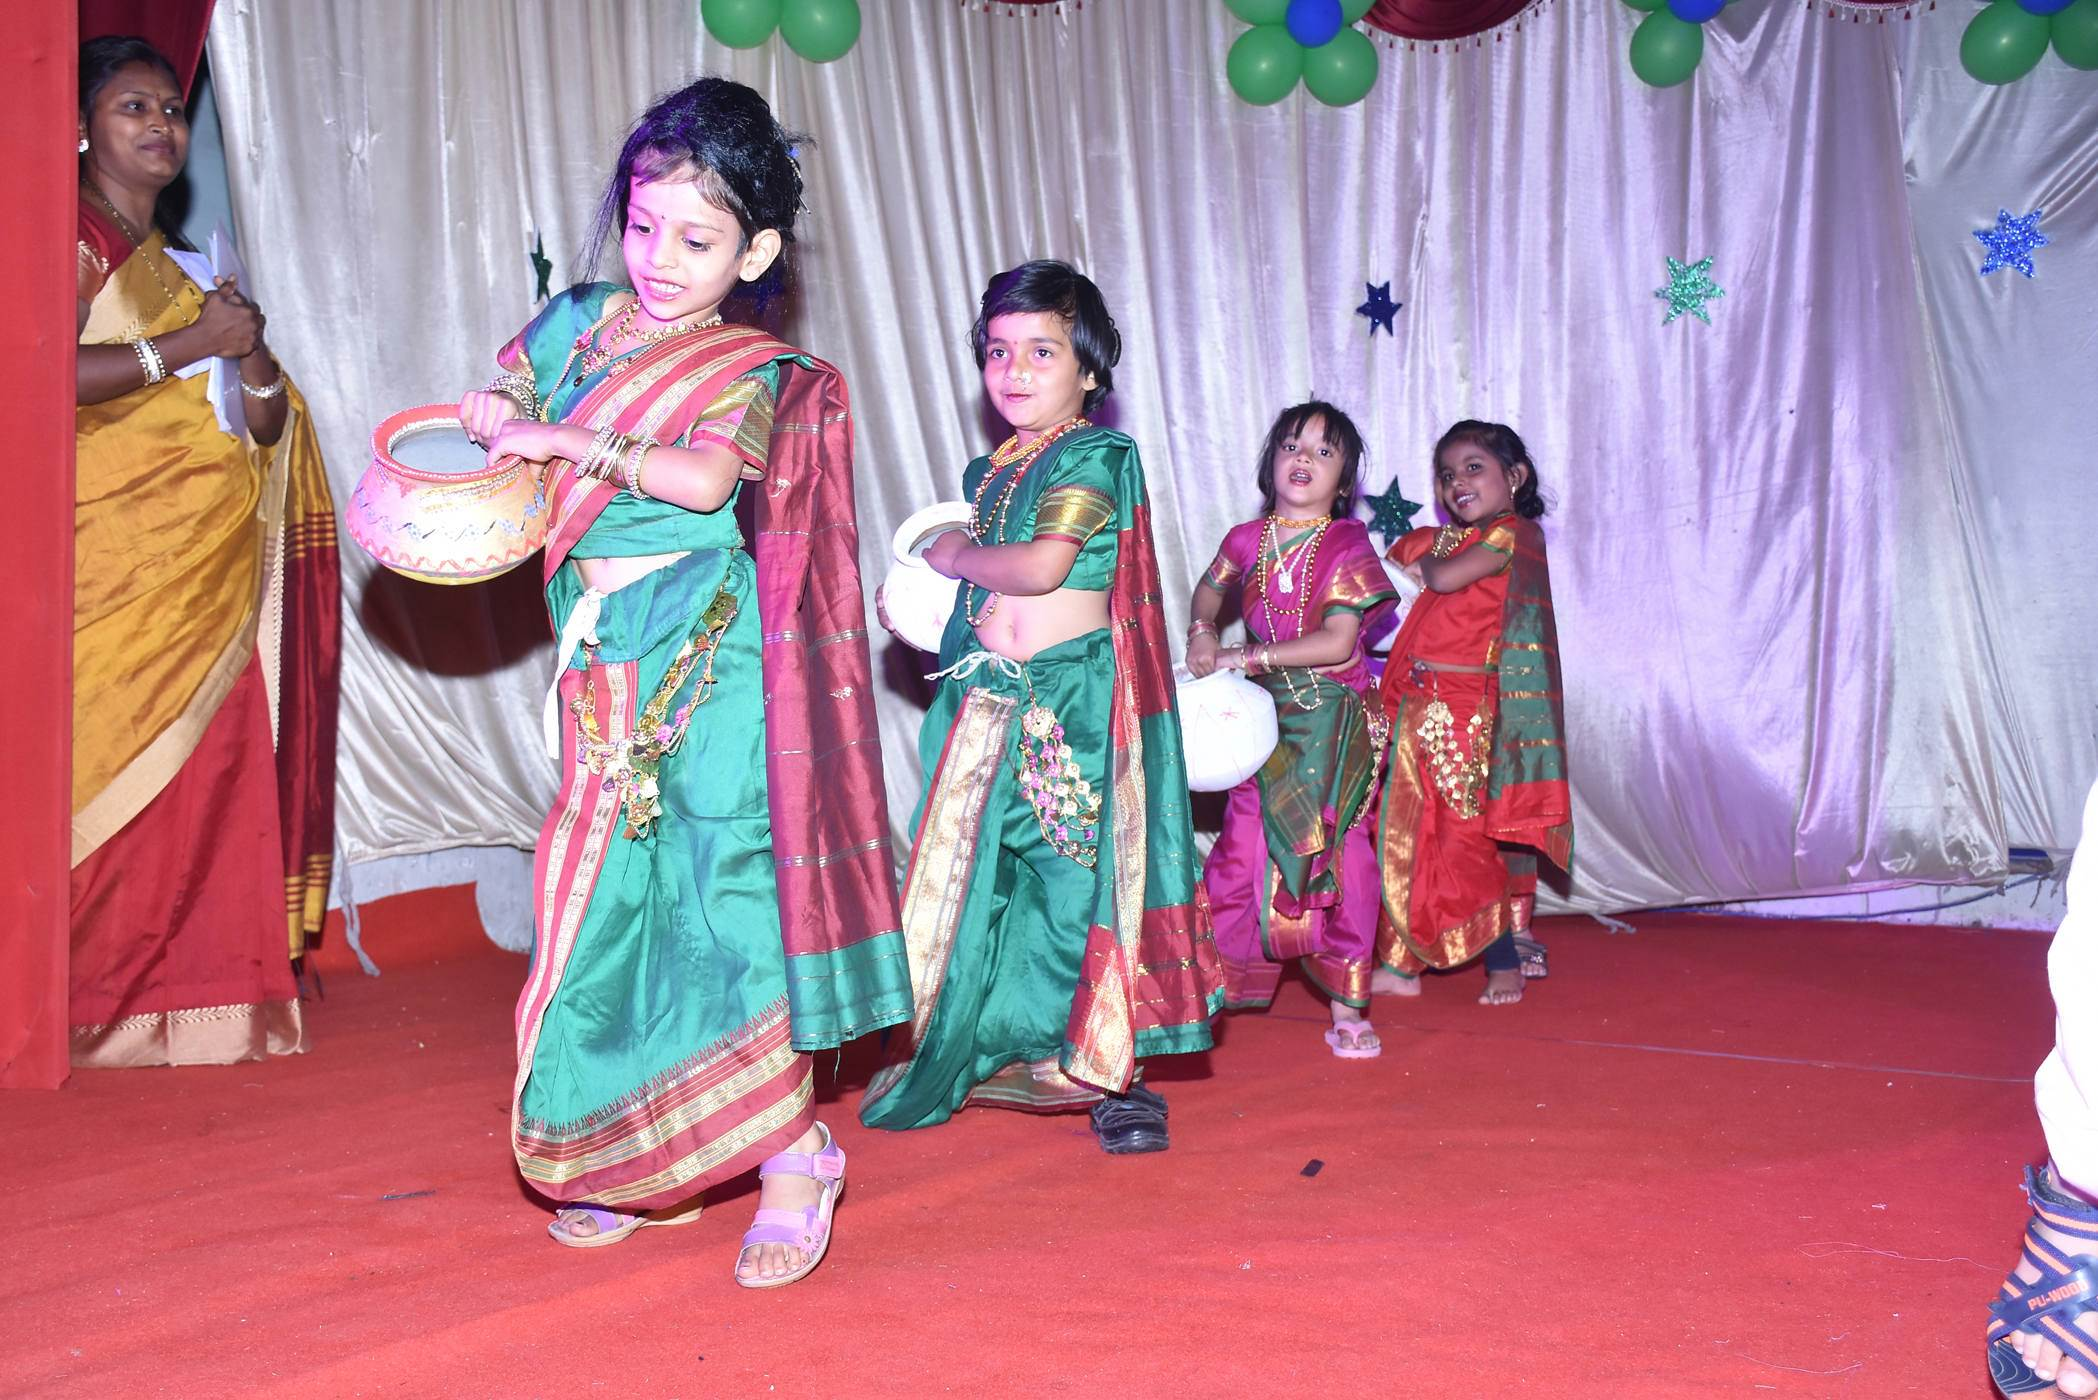 vijaya convent all girls dance performance annual function at the stage